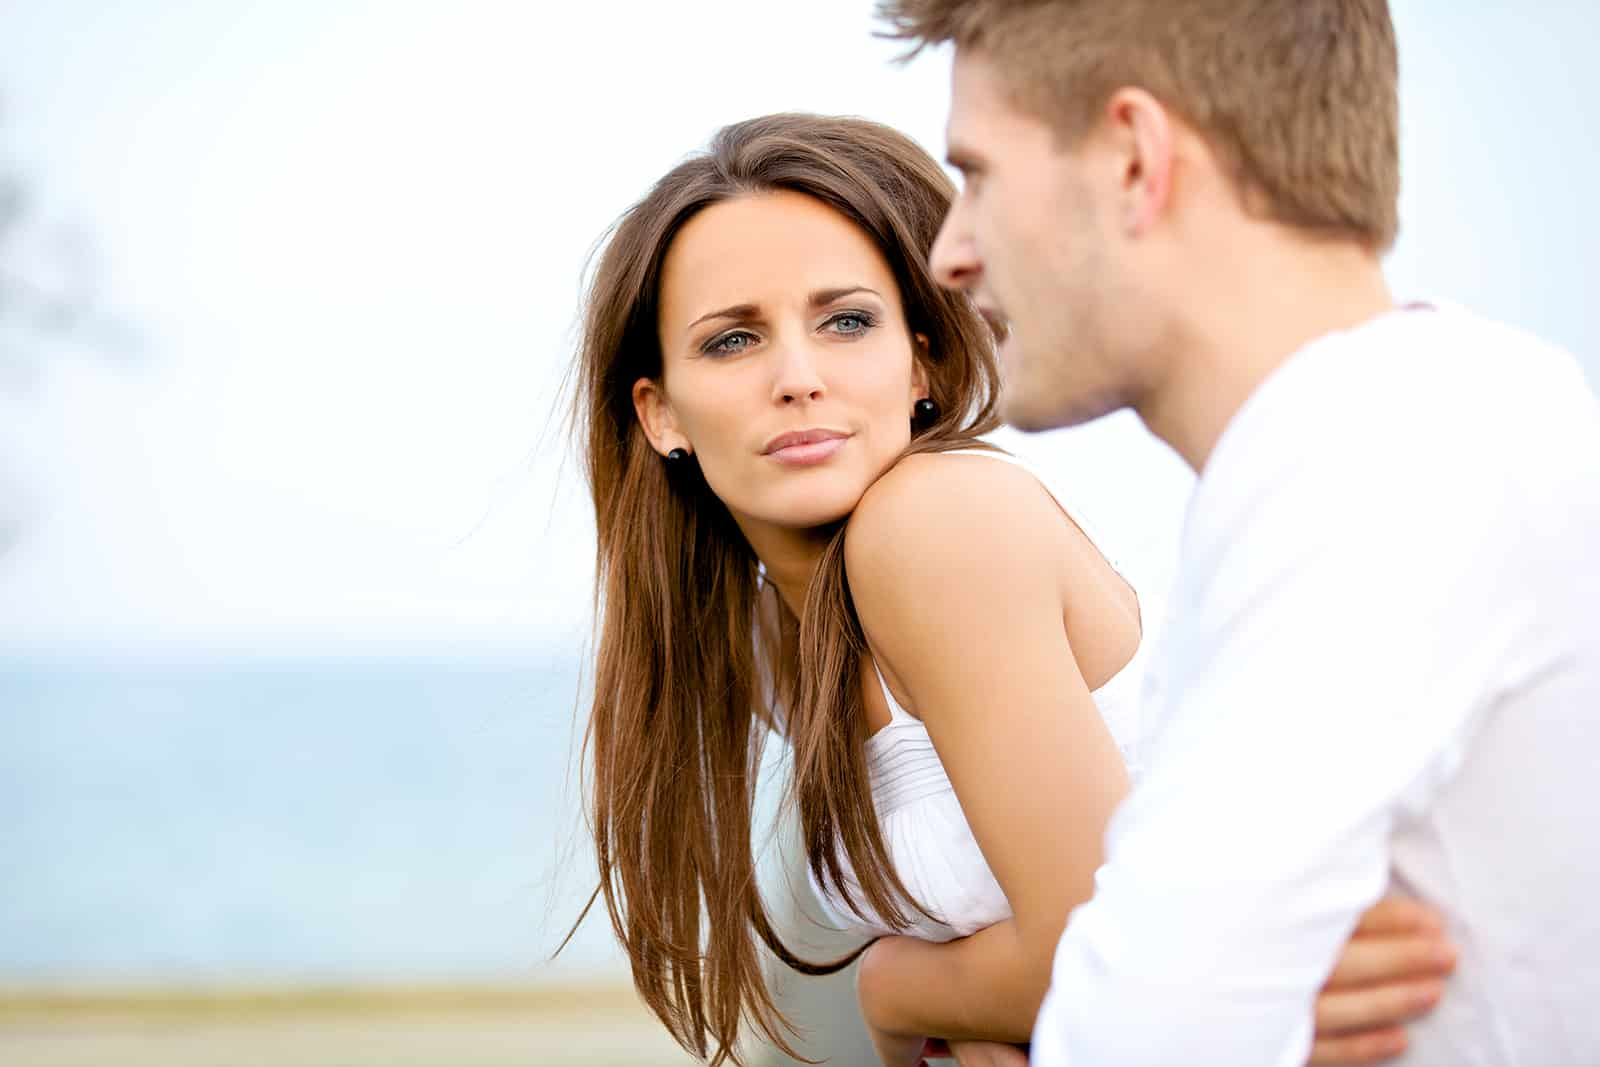 man and a woman having honest conversation while standing outdoor